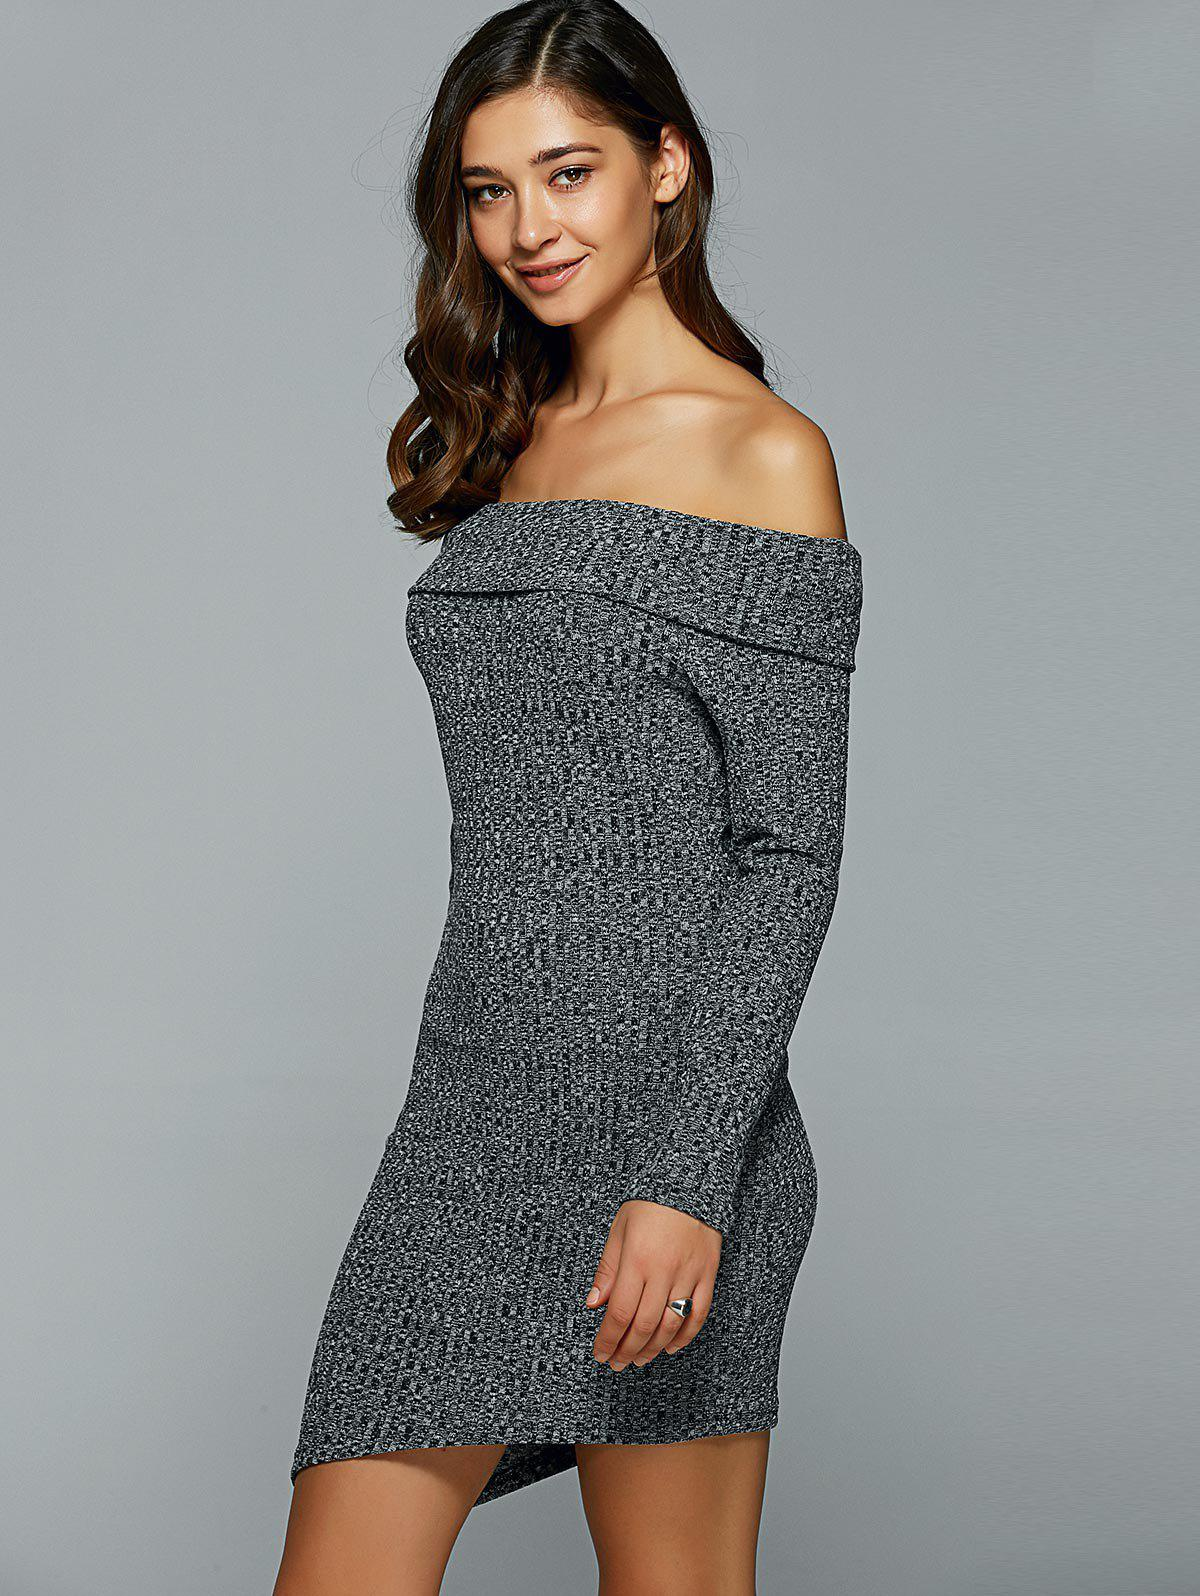 Off-The-Shoulder Heather Asymmetrical Jumper Dress - GRAY S